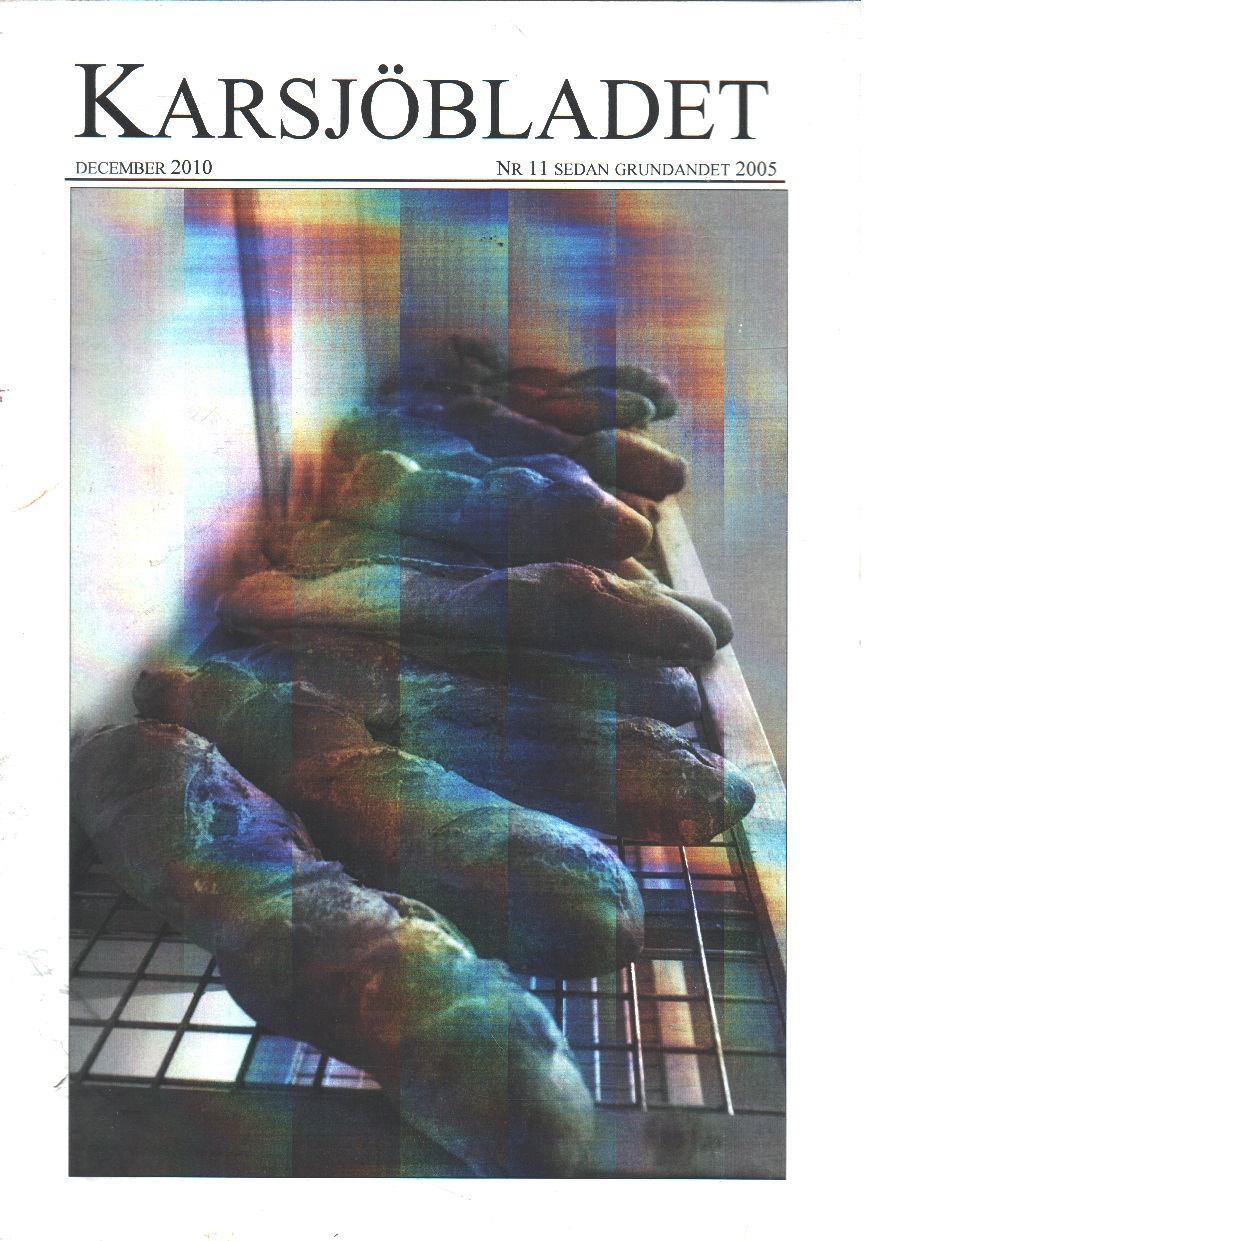 Karsjöbladet 11 - Red.